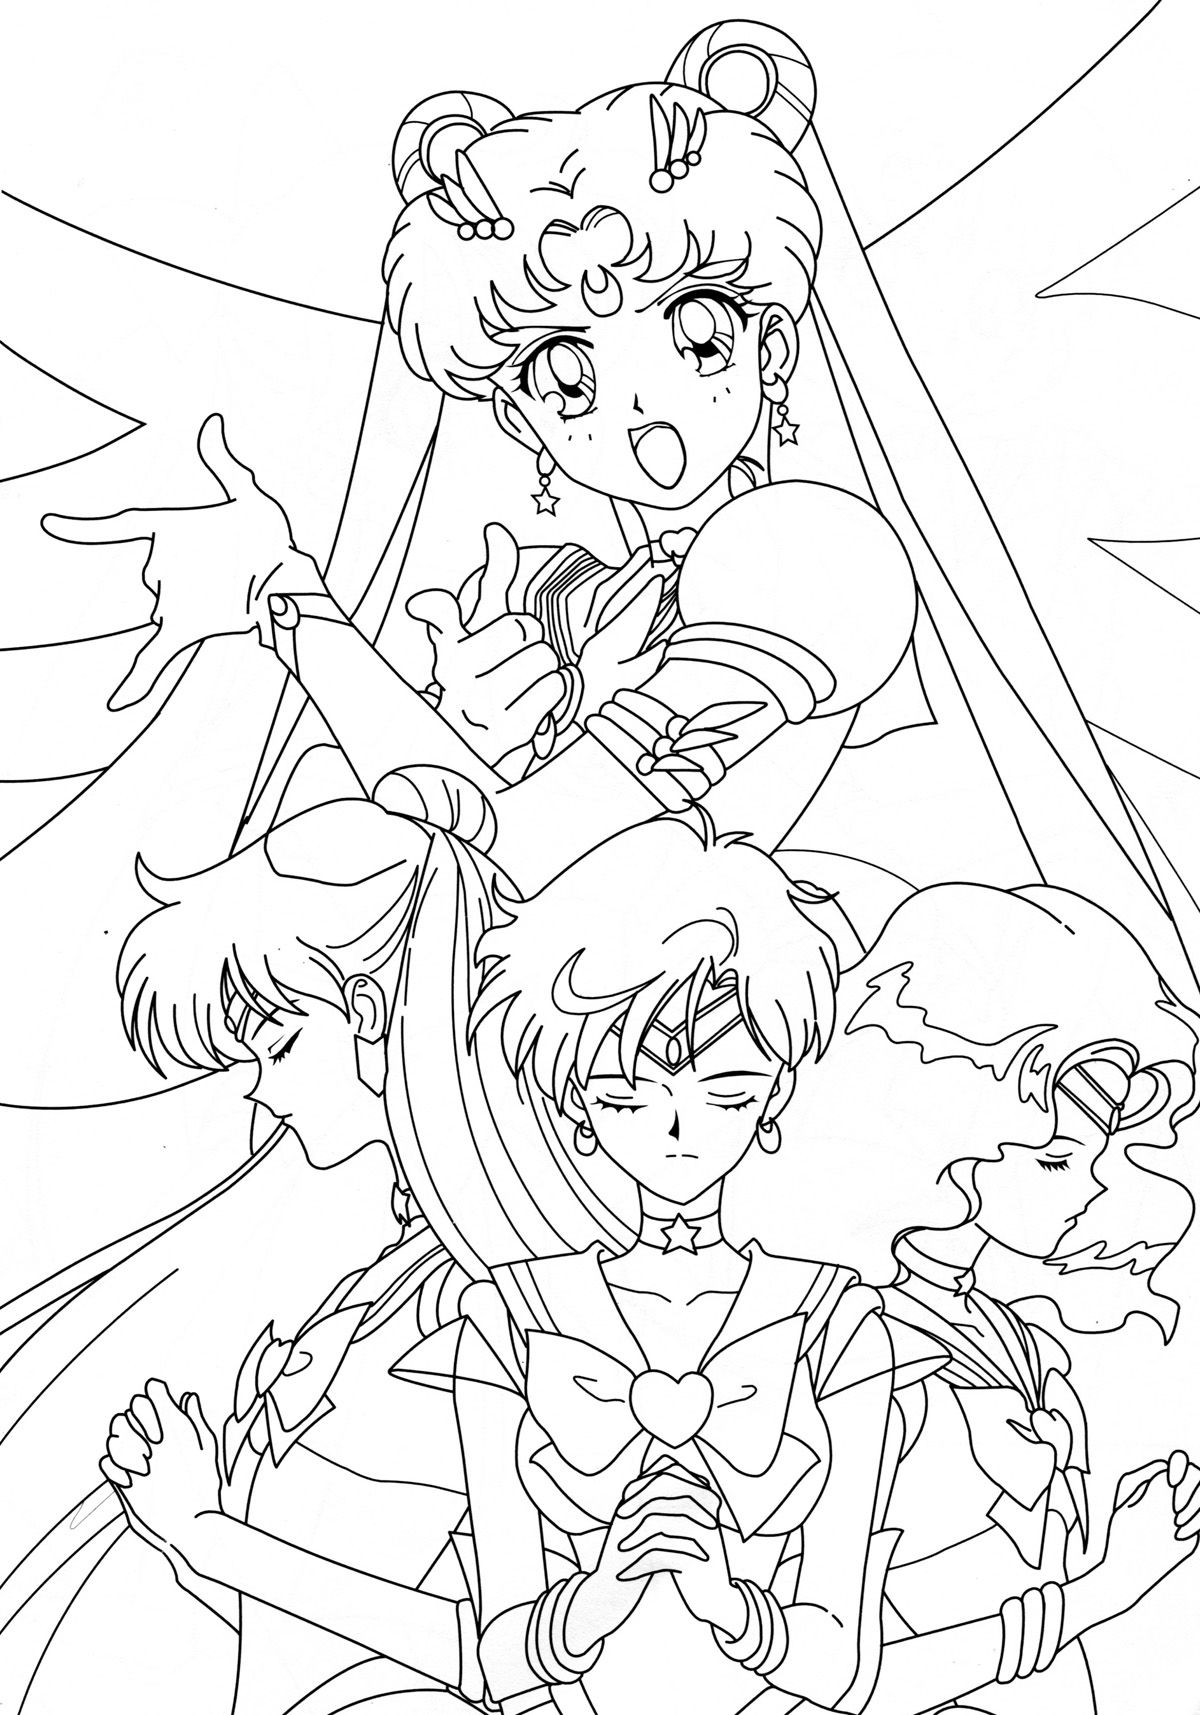 Group018 Jpg 1200 1715 Sailor Moon Coloring Pages Sailor Moon Wallpaper Coloring Books